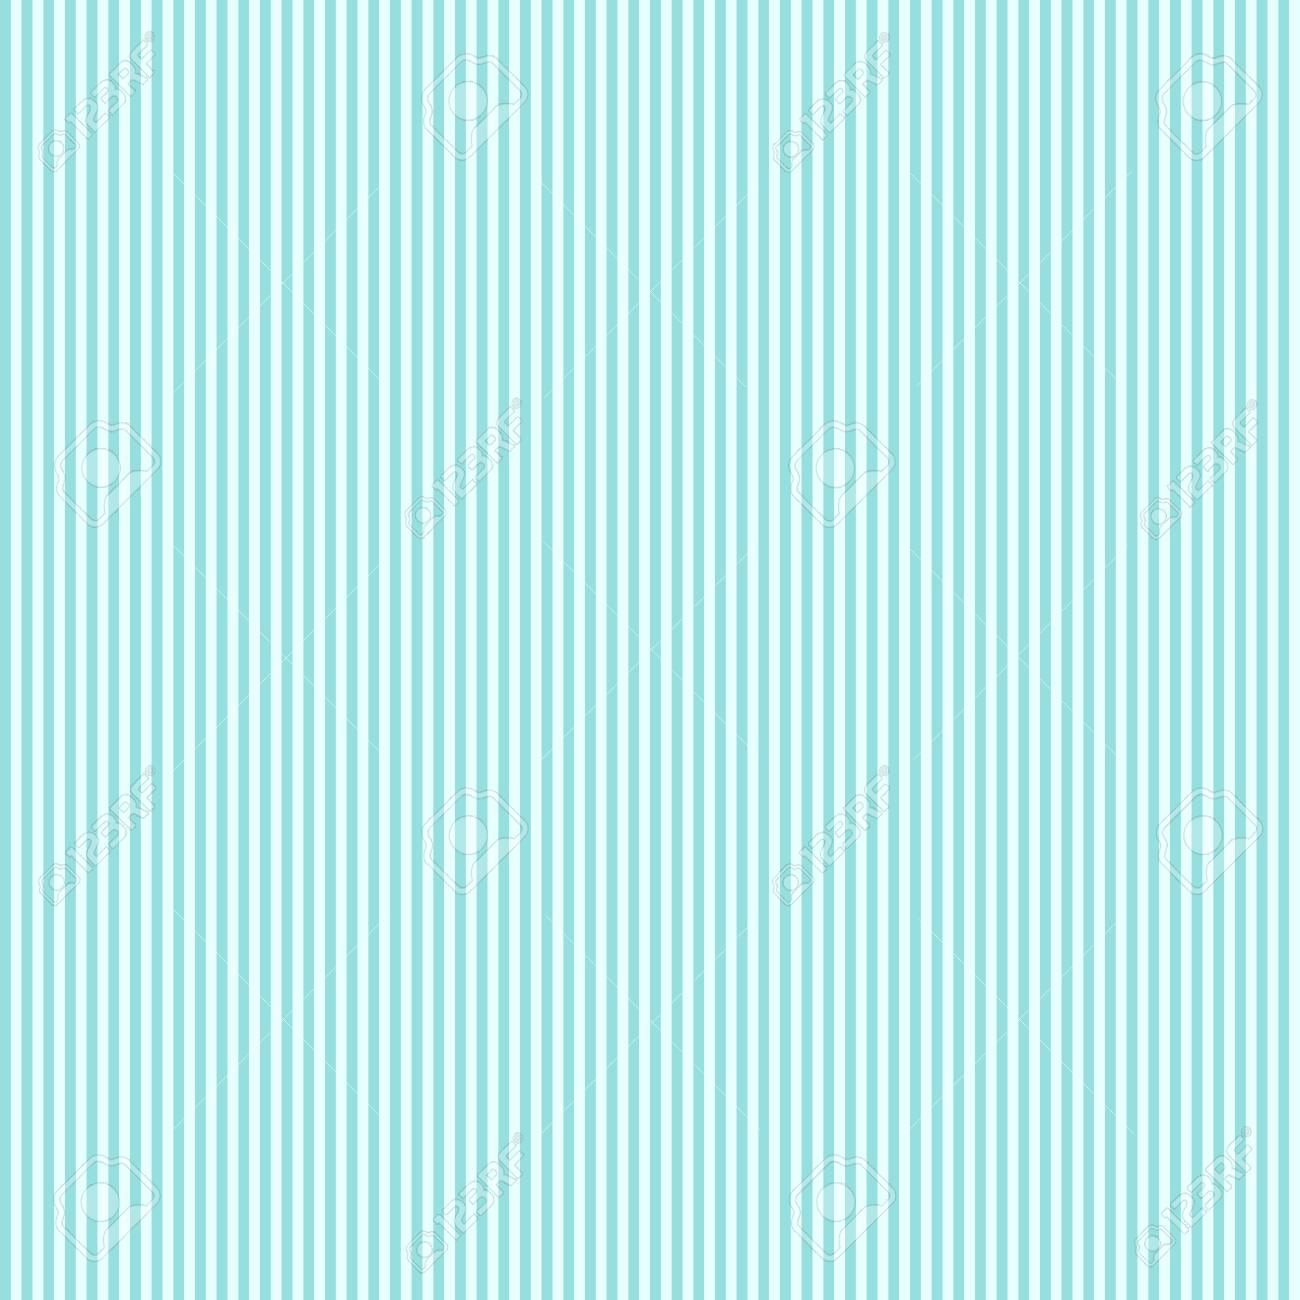 Background Pattern Stripe Seamless Vector Texture Green Aqua Pastel Two Tone Colors Wallpaper Backdrop Vertical